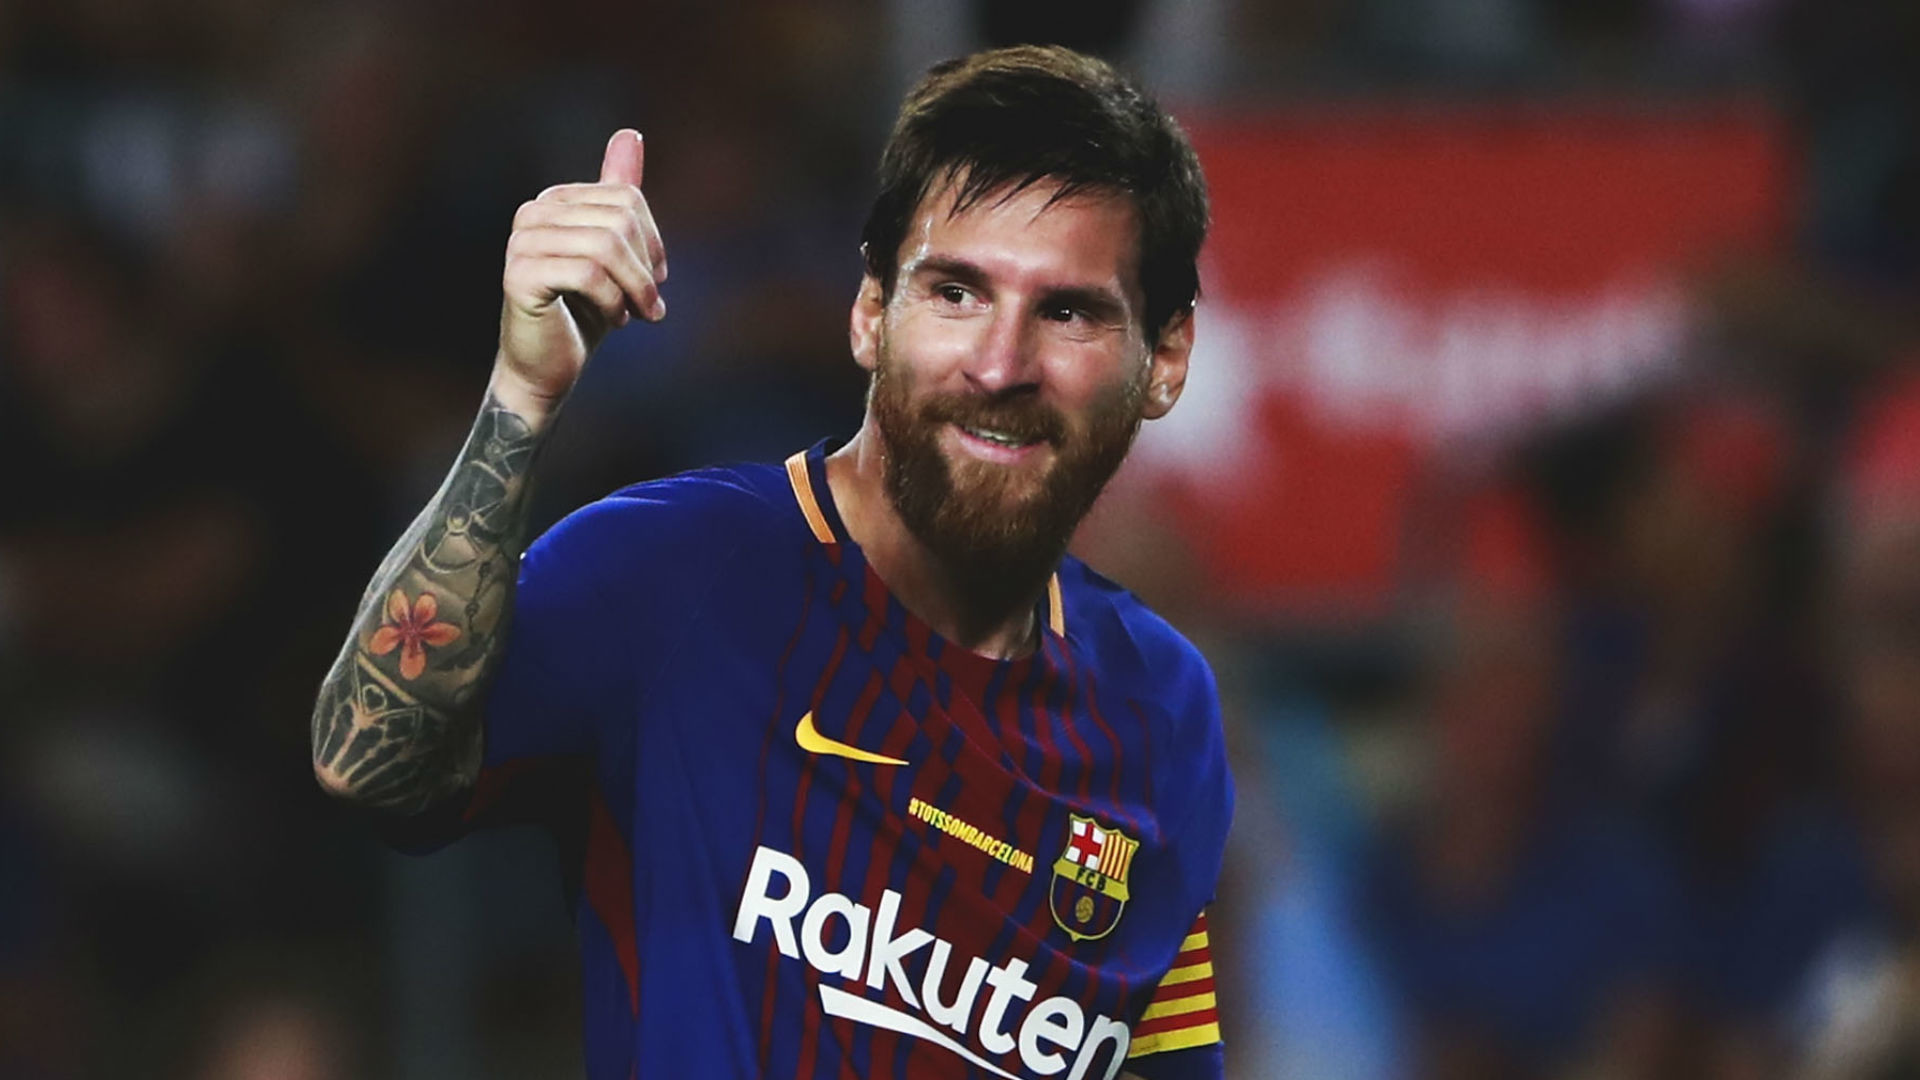 Lionel Messi Wallpapers 2018 (81+ Images